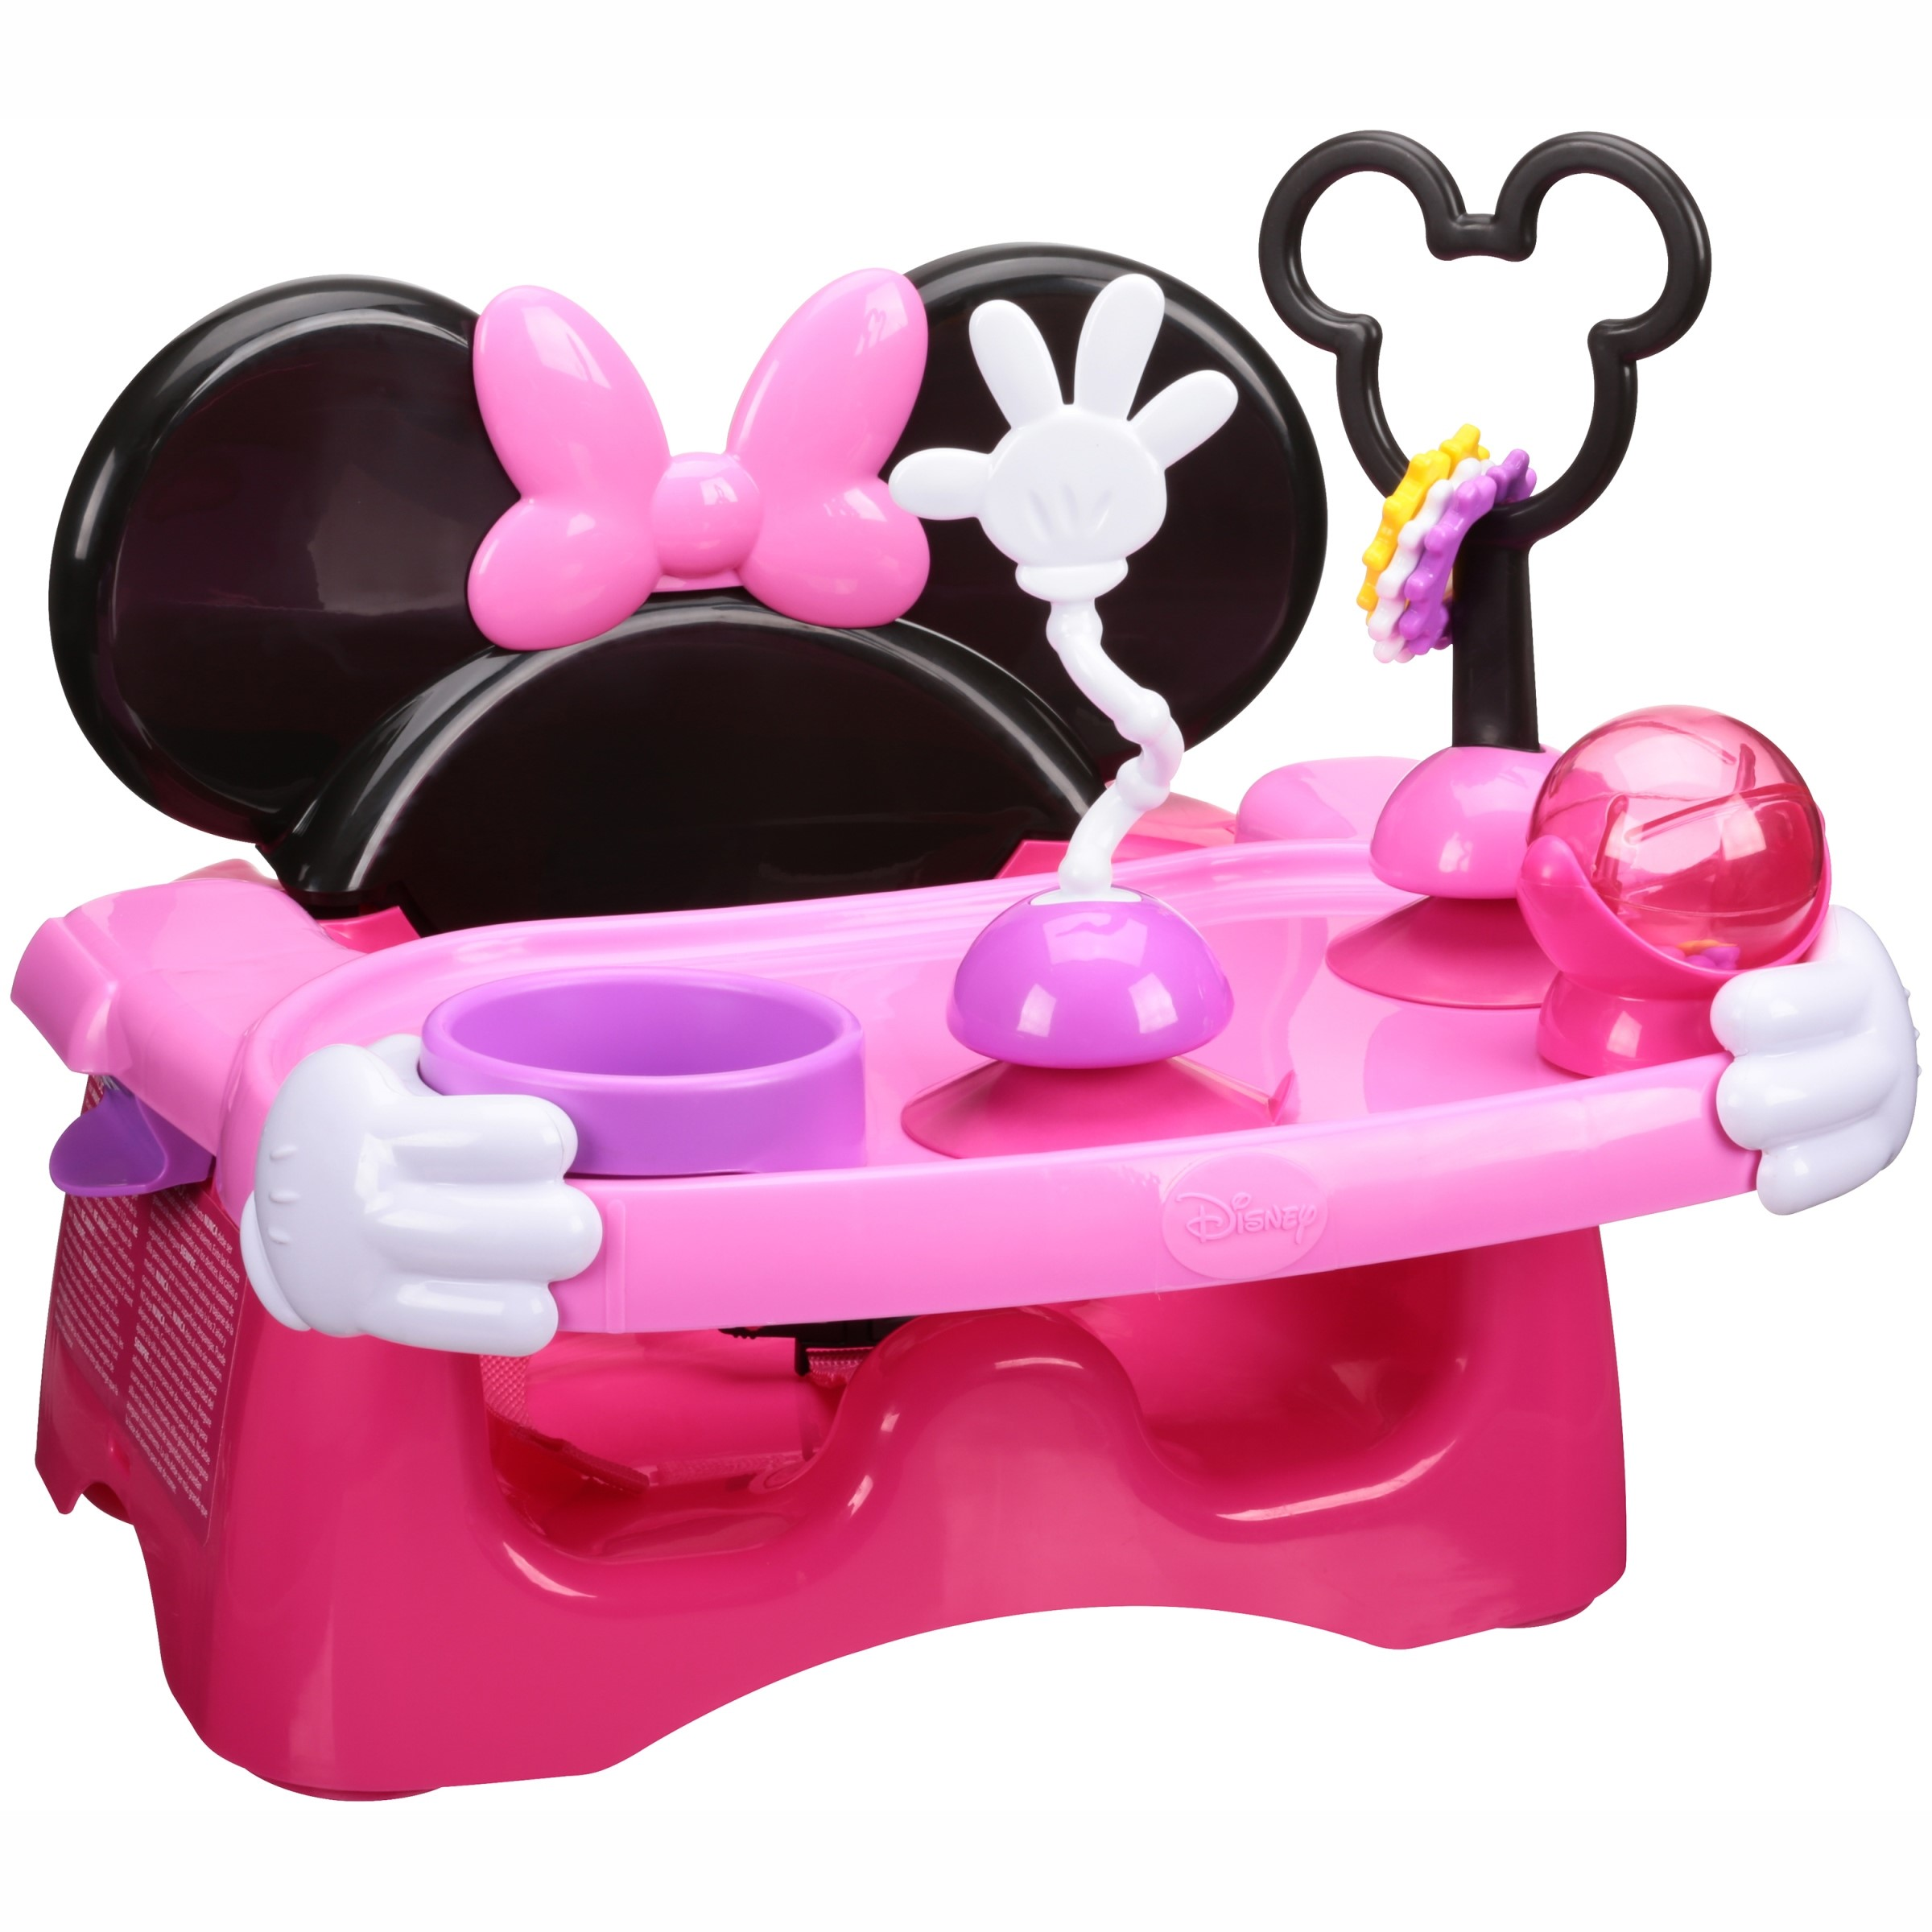 The First Years Disney Minnie Mouse Helping Hands Feeding & Activity Set Hair Chair 7 pc Box by The First Years